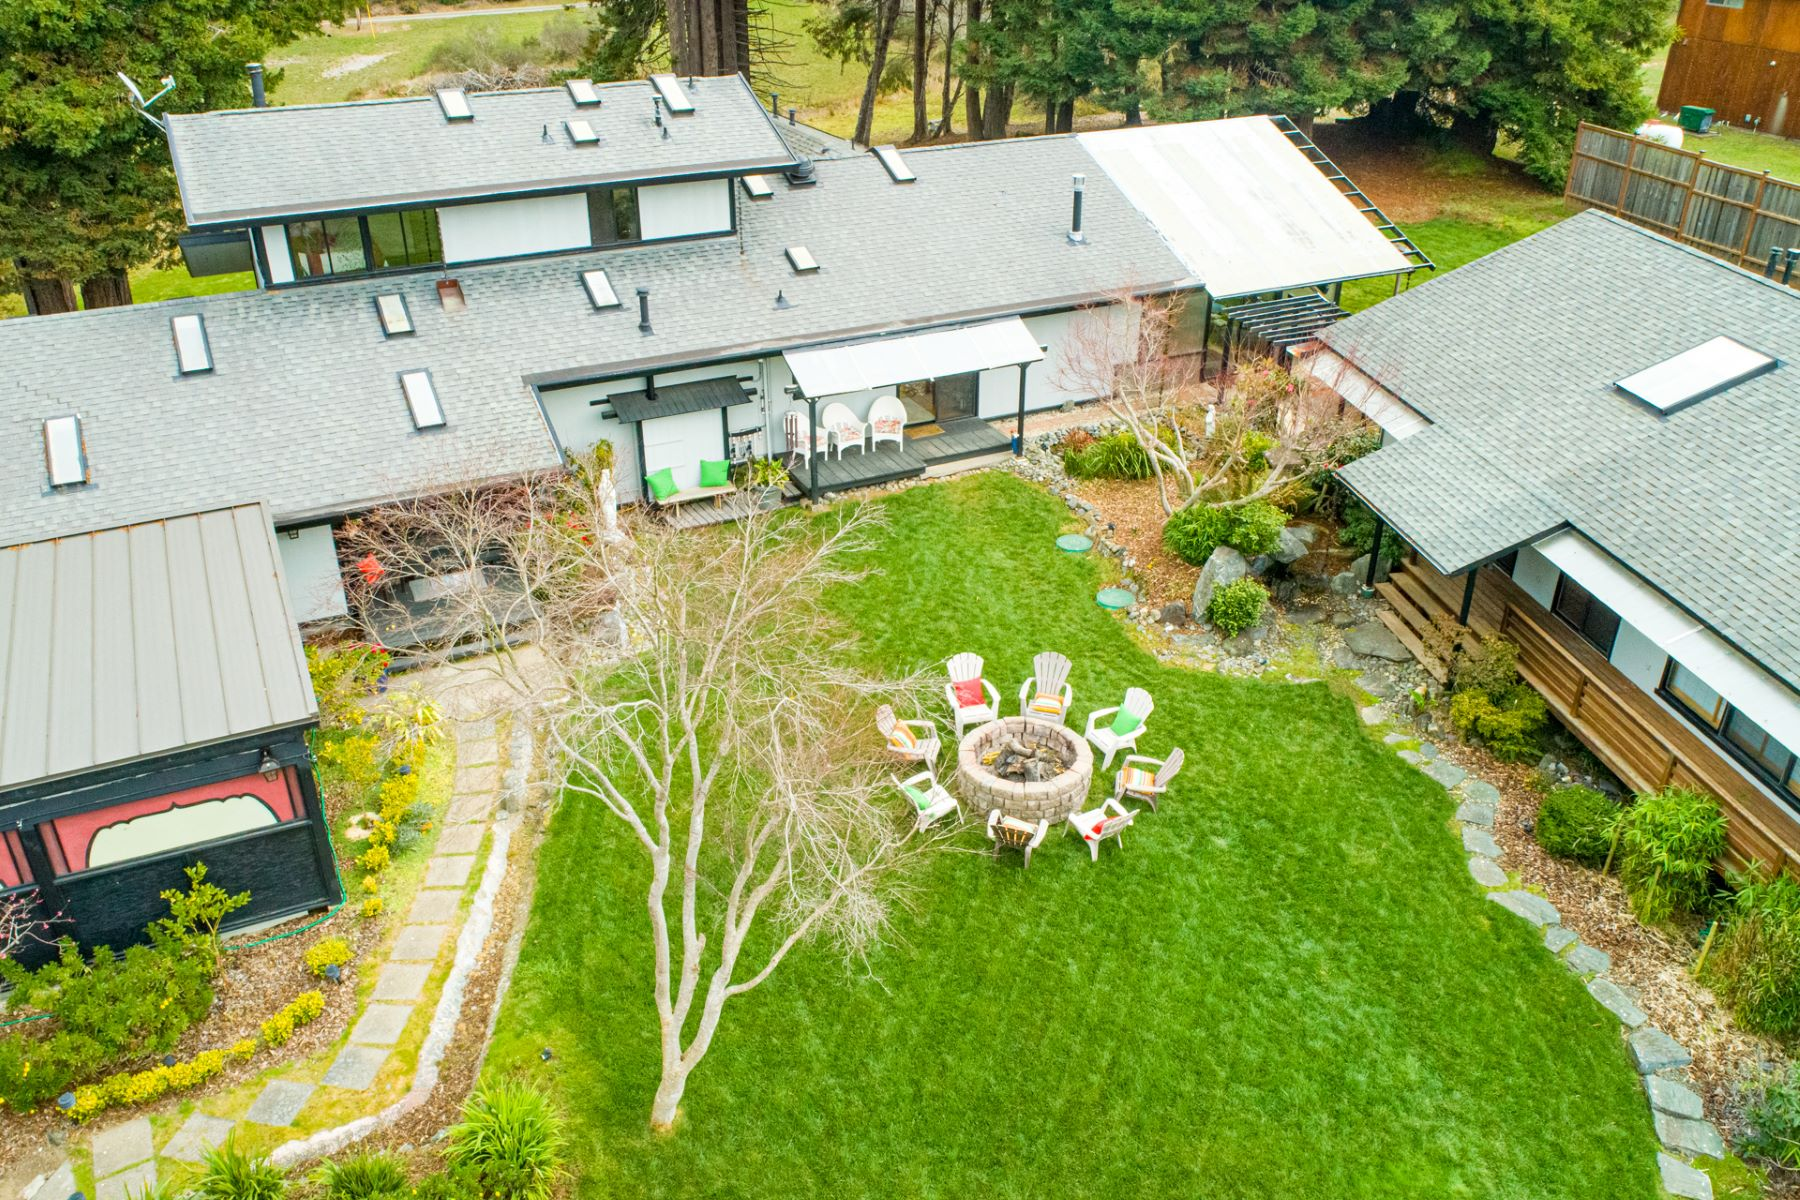 Single Family Homes for Active at Country Harmony 26921 N Highway 1 Fort Bragg, California 95437 United States